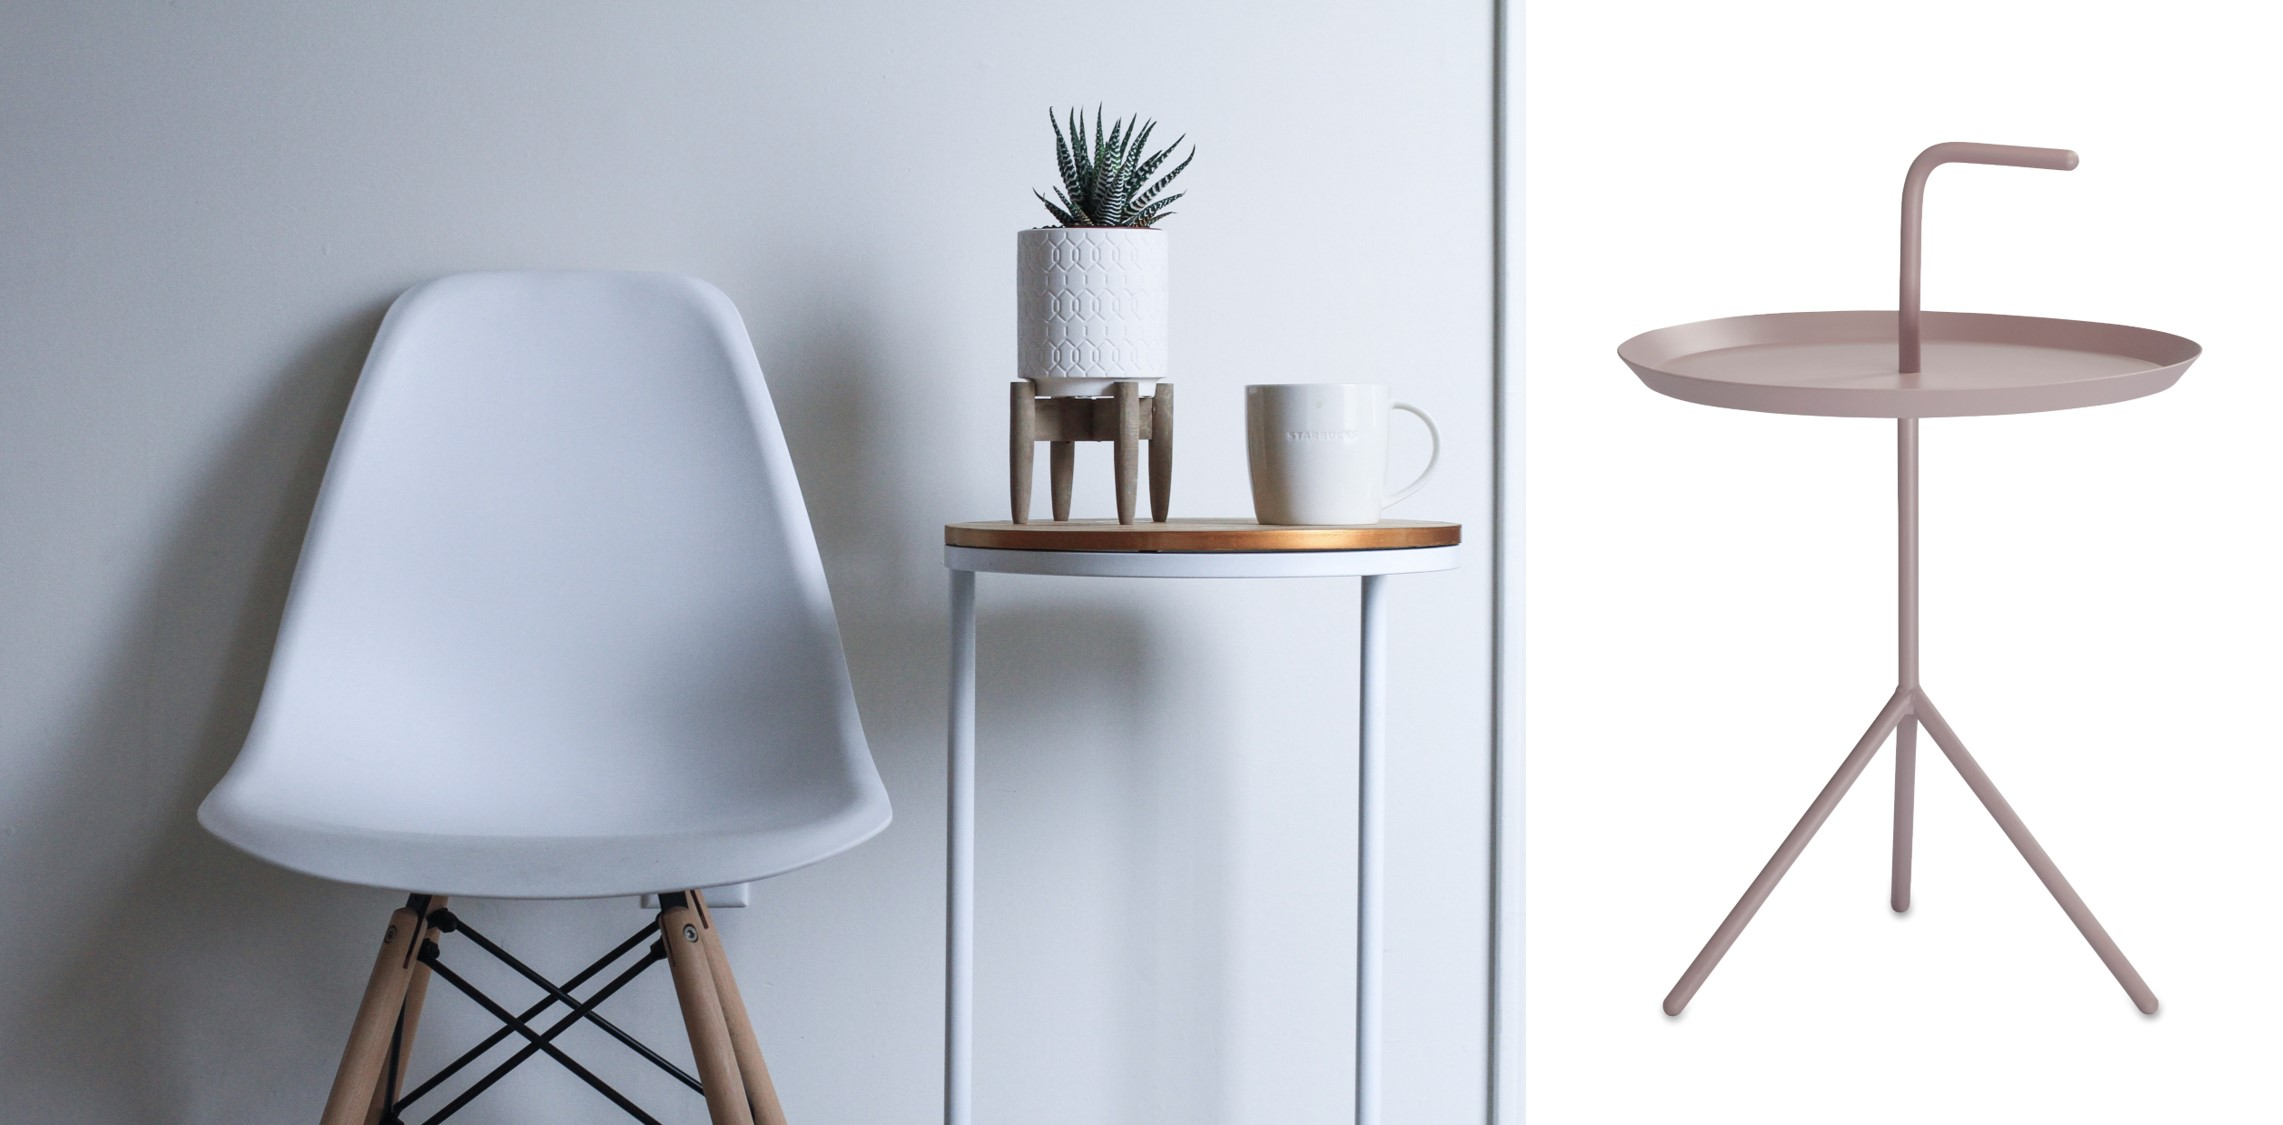 Must Haves Für Den Scandi Style Part 1 Hipster Home